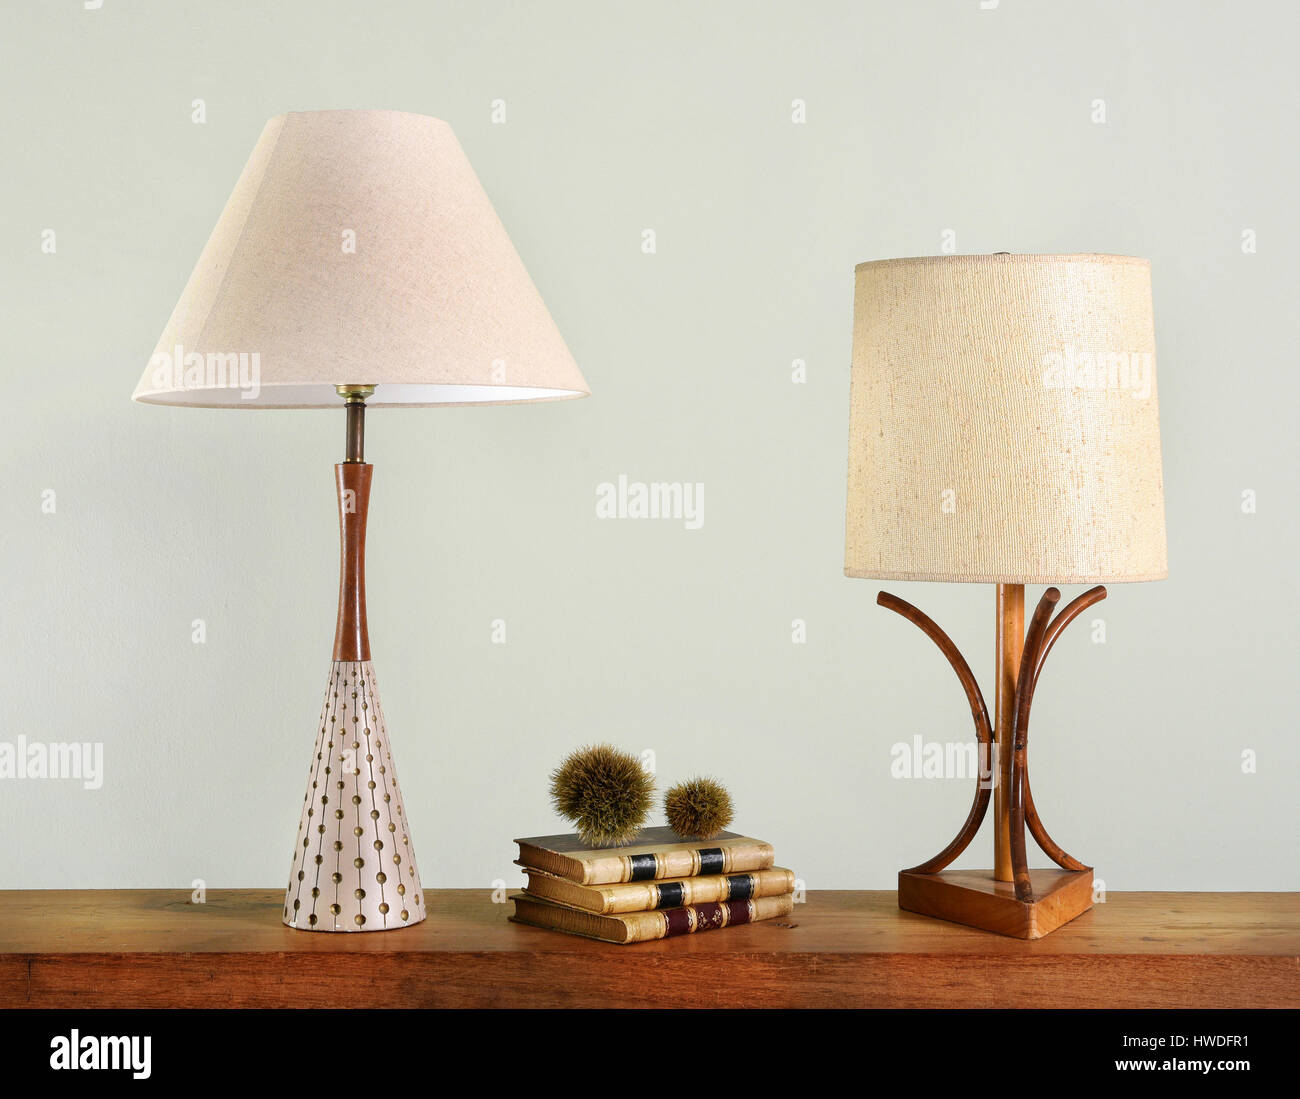 Vintage lamp shades stock photos vintage lamp shades stock images books on wooden shelf between two vintage house lights with classic style lamp shades stock aloadofball Choice Image